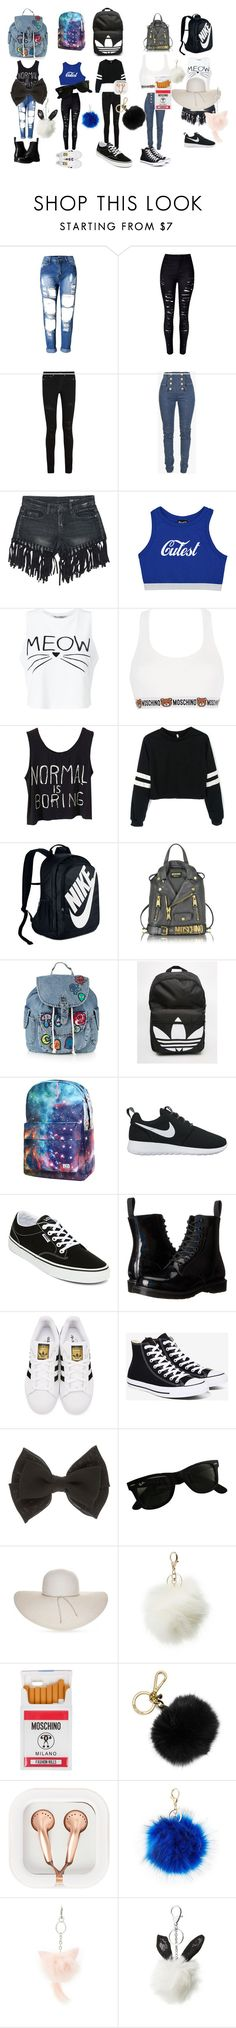 """""""the perfect accessory"""" by akyiajones on Polyvore featuring WithChic, Yves Saint Laurent, Balmain, Sans Souci, Miss Selfridge, Moschino, NIKE, Topshop, adidas and Vans"""